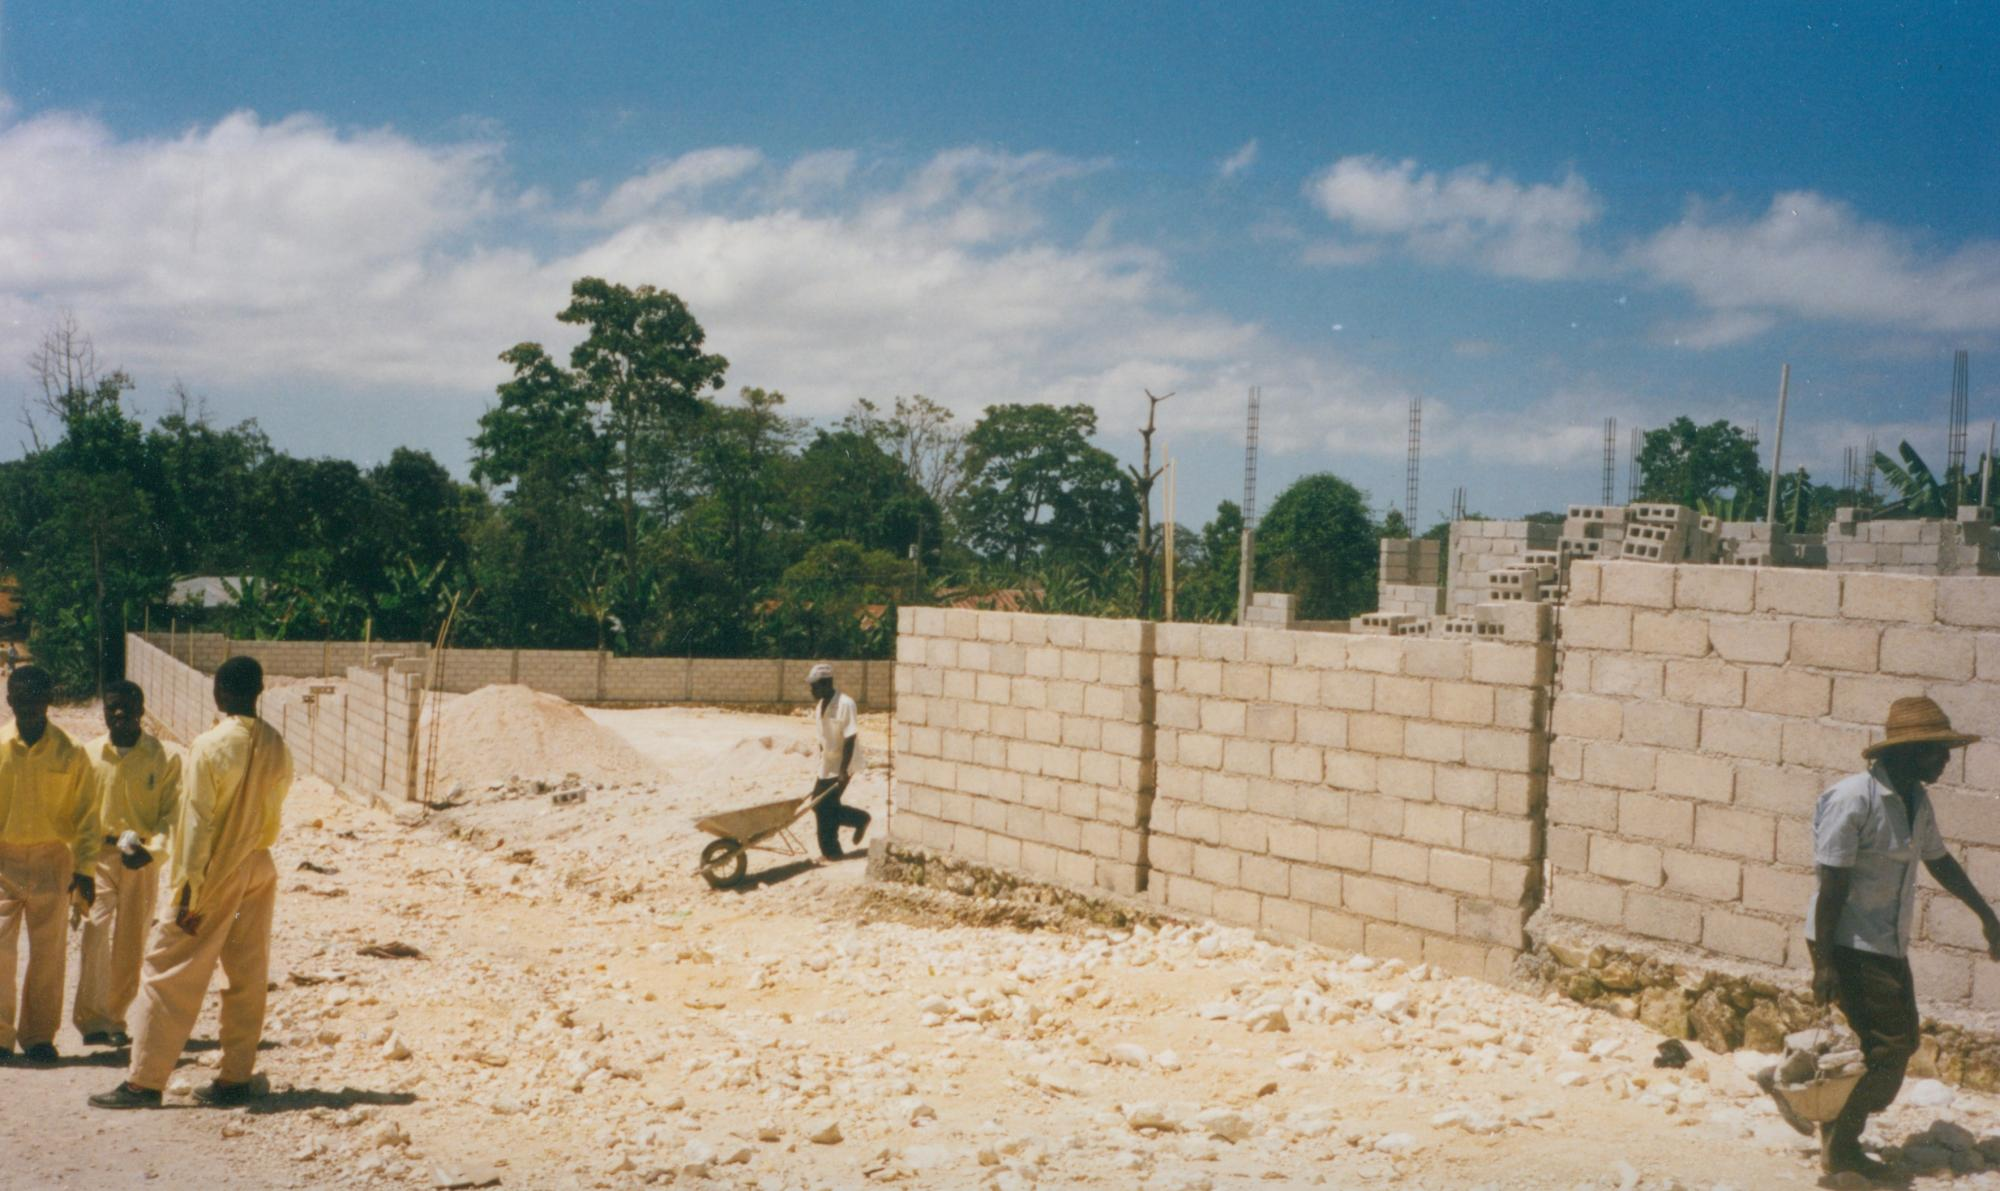 Clinic_construction_circa_July_2001_image30.jpg